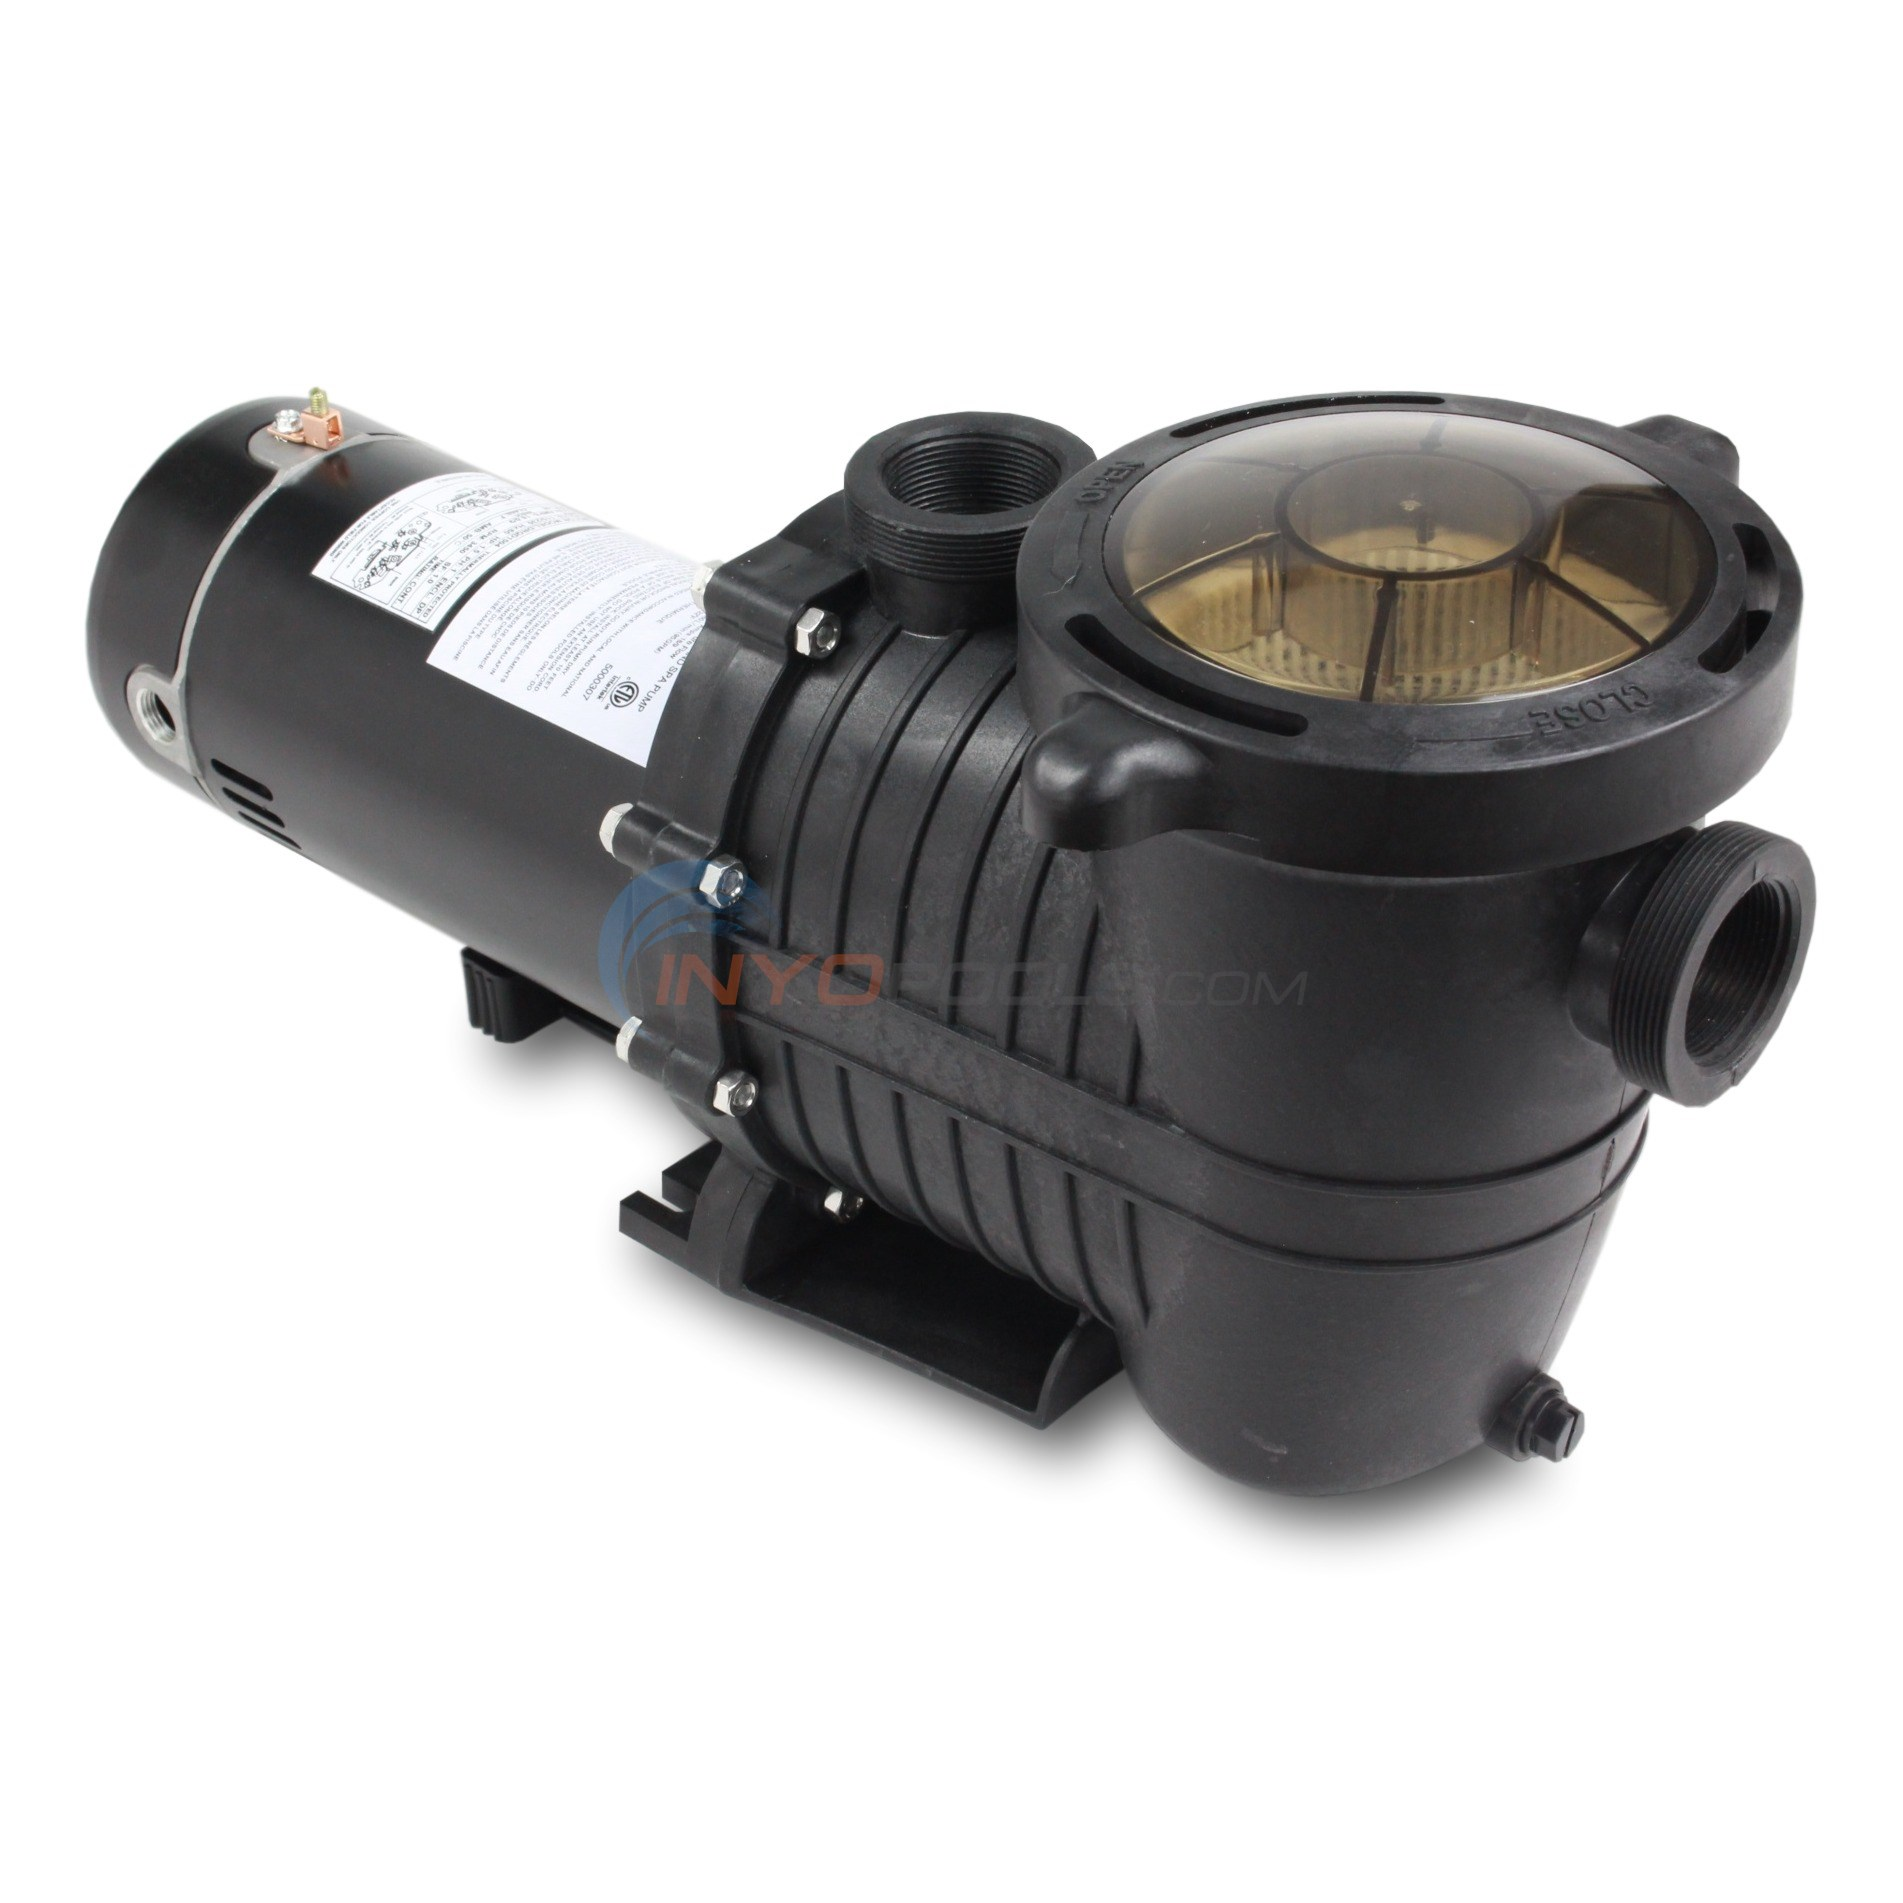 pureline pl1600 04?format=jpg&scale=both&anchor=middlecenter&autorotate=true&mode=pad&width=650&height=650 pureline 1 5 h p in ground pool pump 72744 inyopools com  at fashall.co